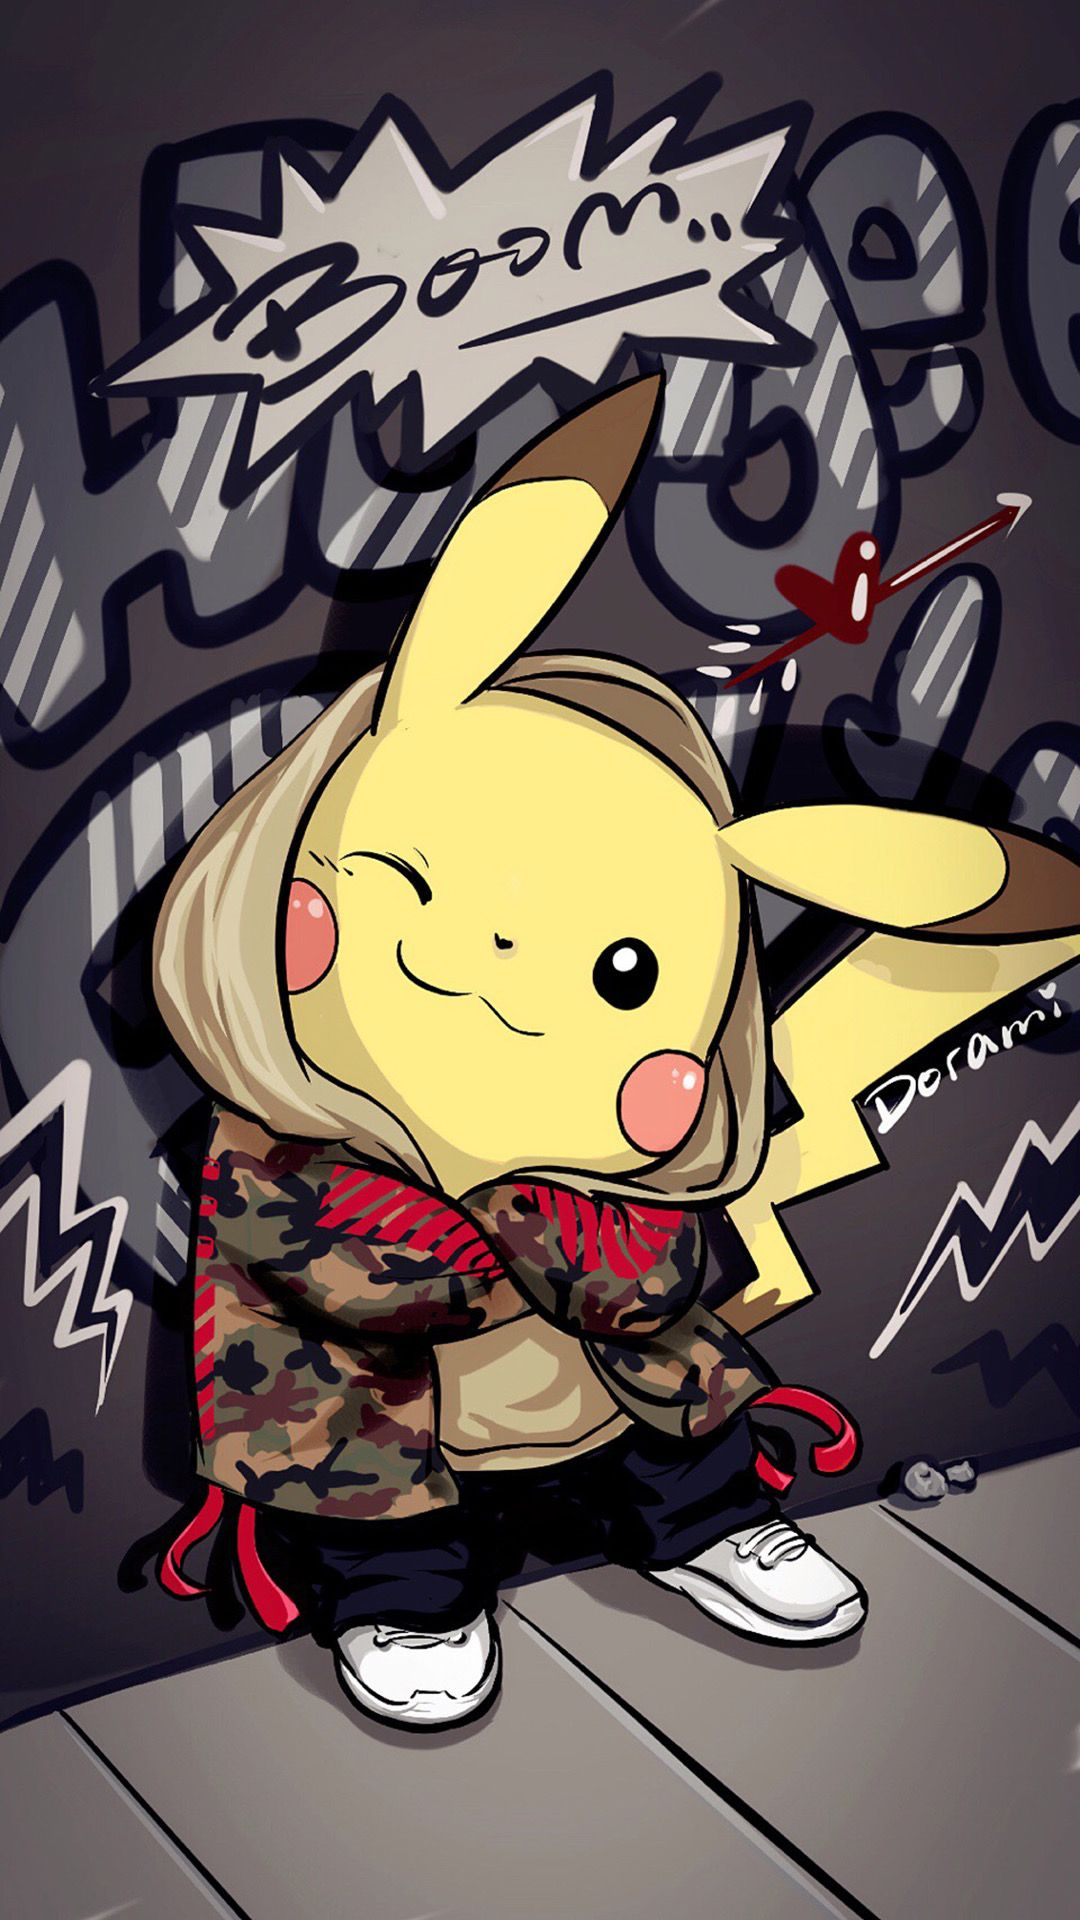 Hd Phone Wallpaper And Backgrounds Pikachu Wallpaper Iphone Pikachu Wallpaper Cool Pokemon Wallpapers